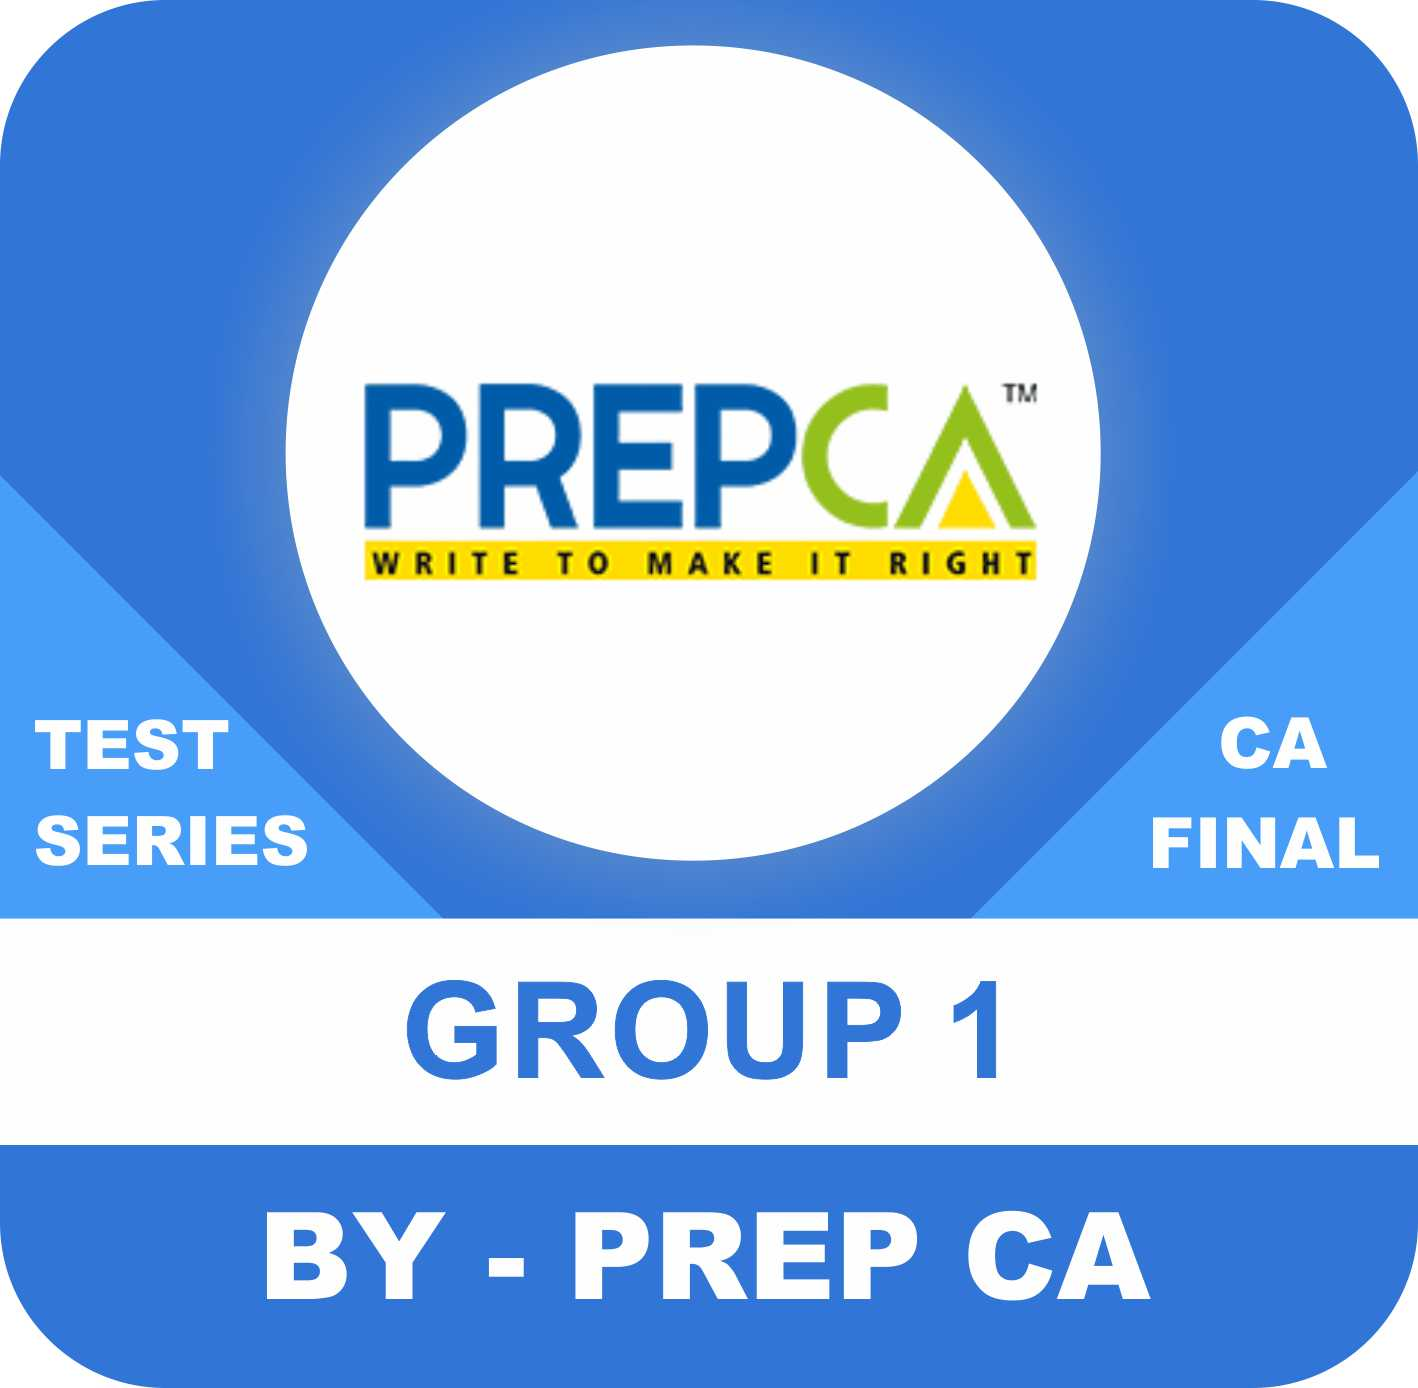 CA Final First Group New Syllabus Test Series in Standard Express Program by PREPCA